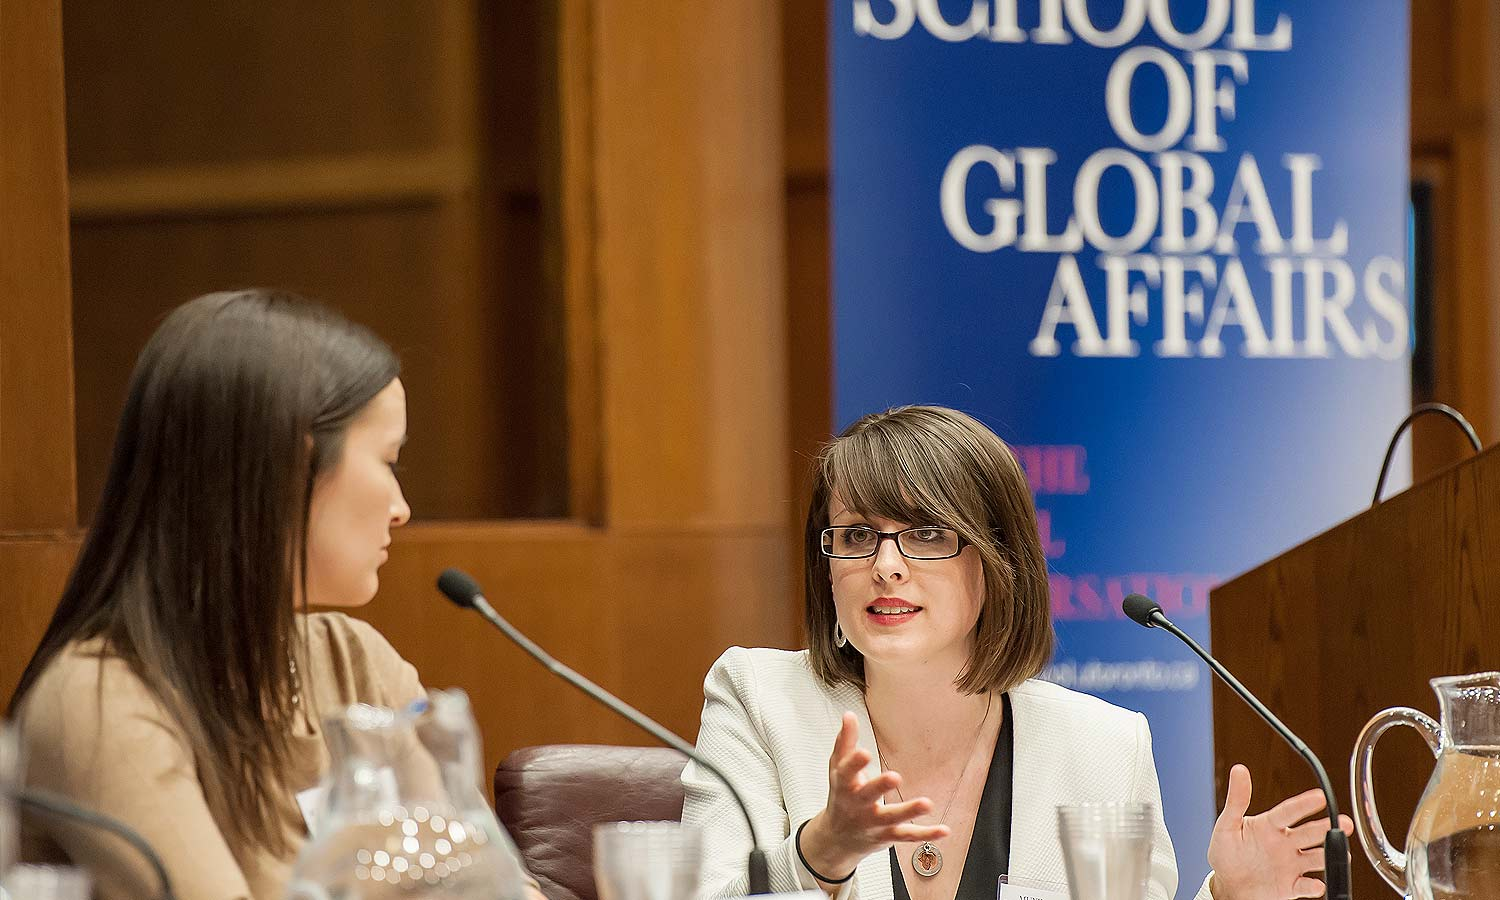 Master of Global Affairs fellowships